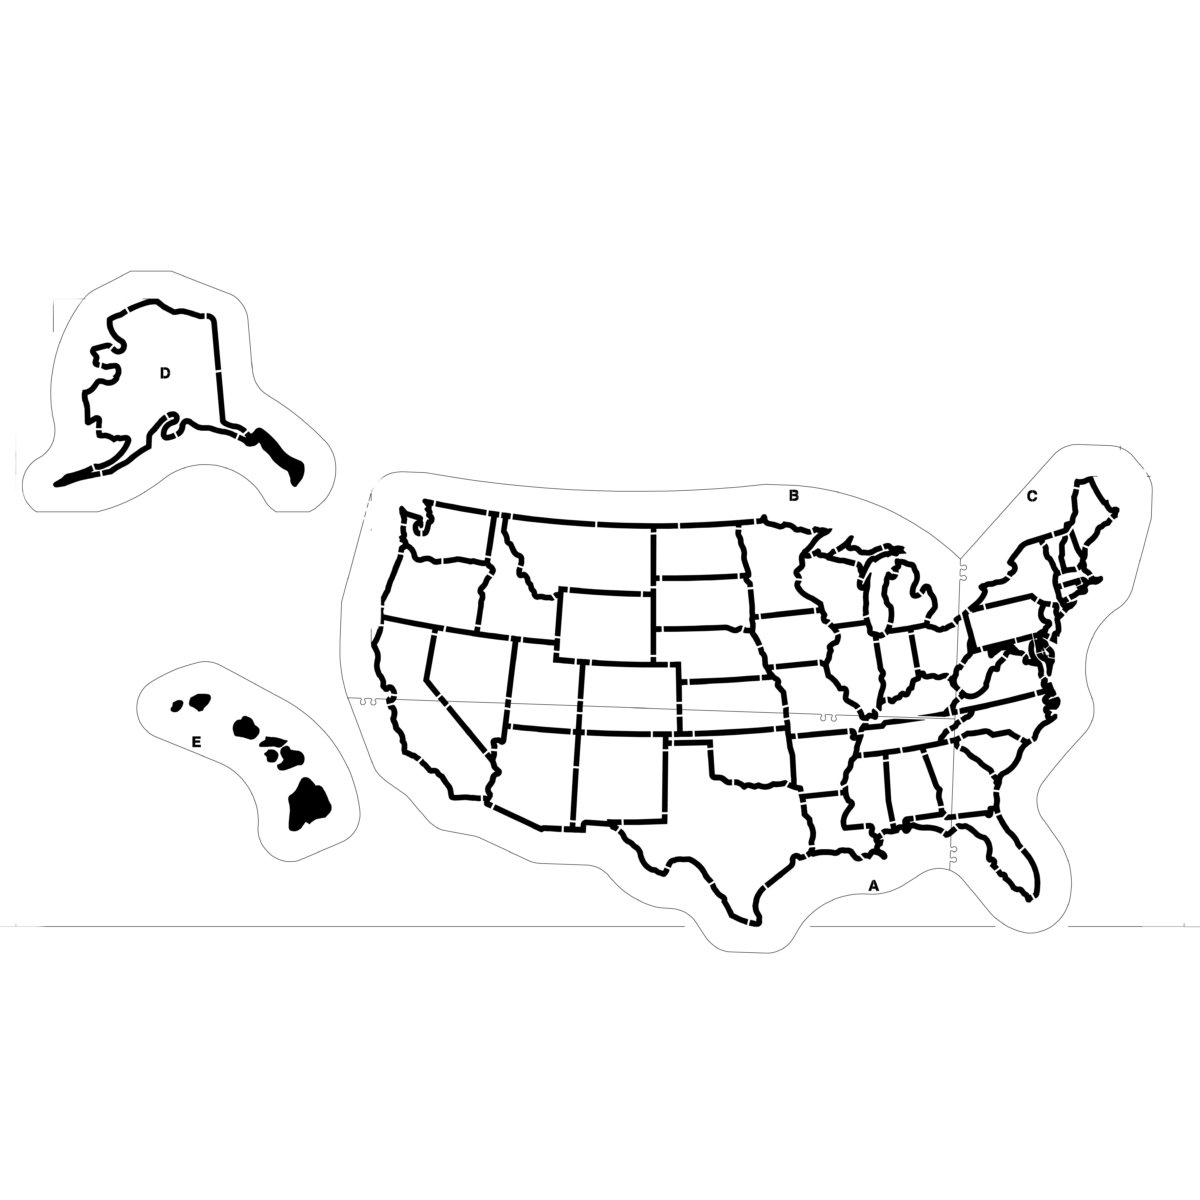 Increase your students interest and knowledge in geography with our durable <strong>US Map Playground Stencil</strong>. Unlike paper stencils or thin plastic, our stencils won't rip, crack, or blow away. Stencils lay flat and stay flat, requiring no taping or weights. Made of our 1/8 inch (125 mil)<strong> Polythough™</strong> plastic they are the most durable in the industry.With proper care your stencil will last a lifetime. In fact, we guarantee it with our Lifetime guarantee. <ul> <li>Easy to Use</li> <li>Specifically designed for repeated use</li> <li>Ideally suited for use on asphalt or concrete surfaces</li> <li><strong><strong>Lifetime Warranty</strong></strong></li> </ul>